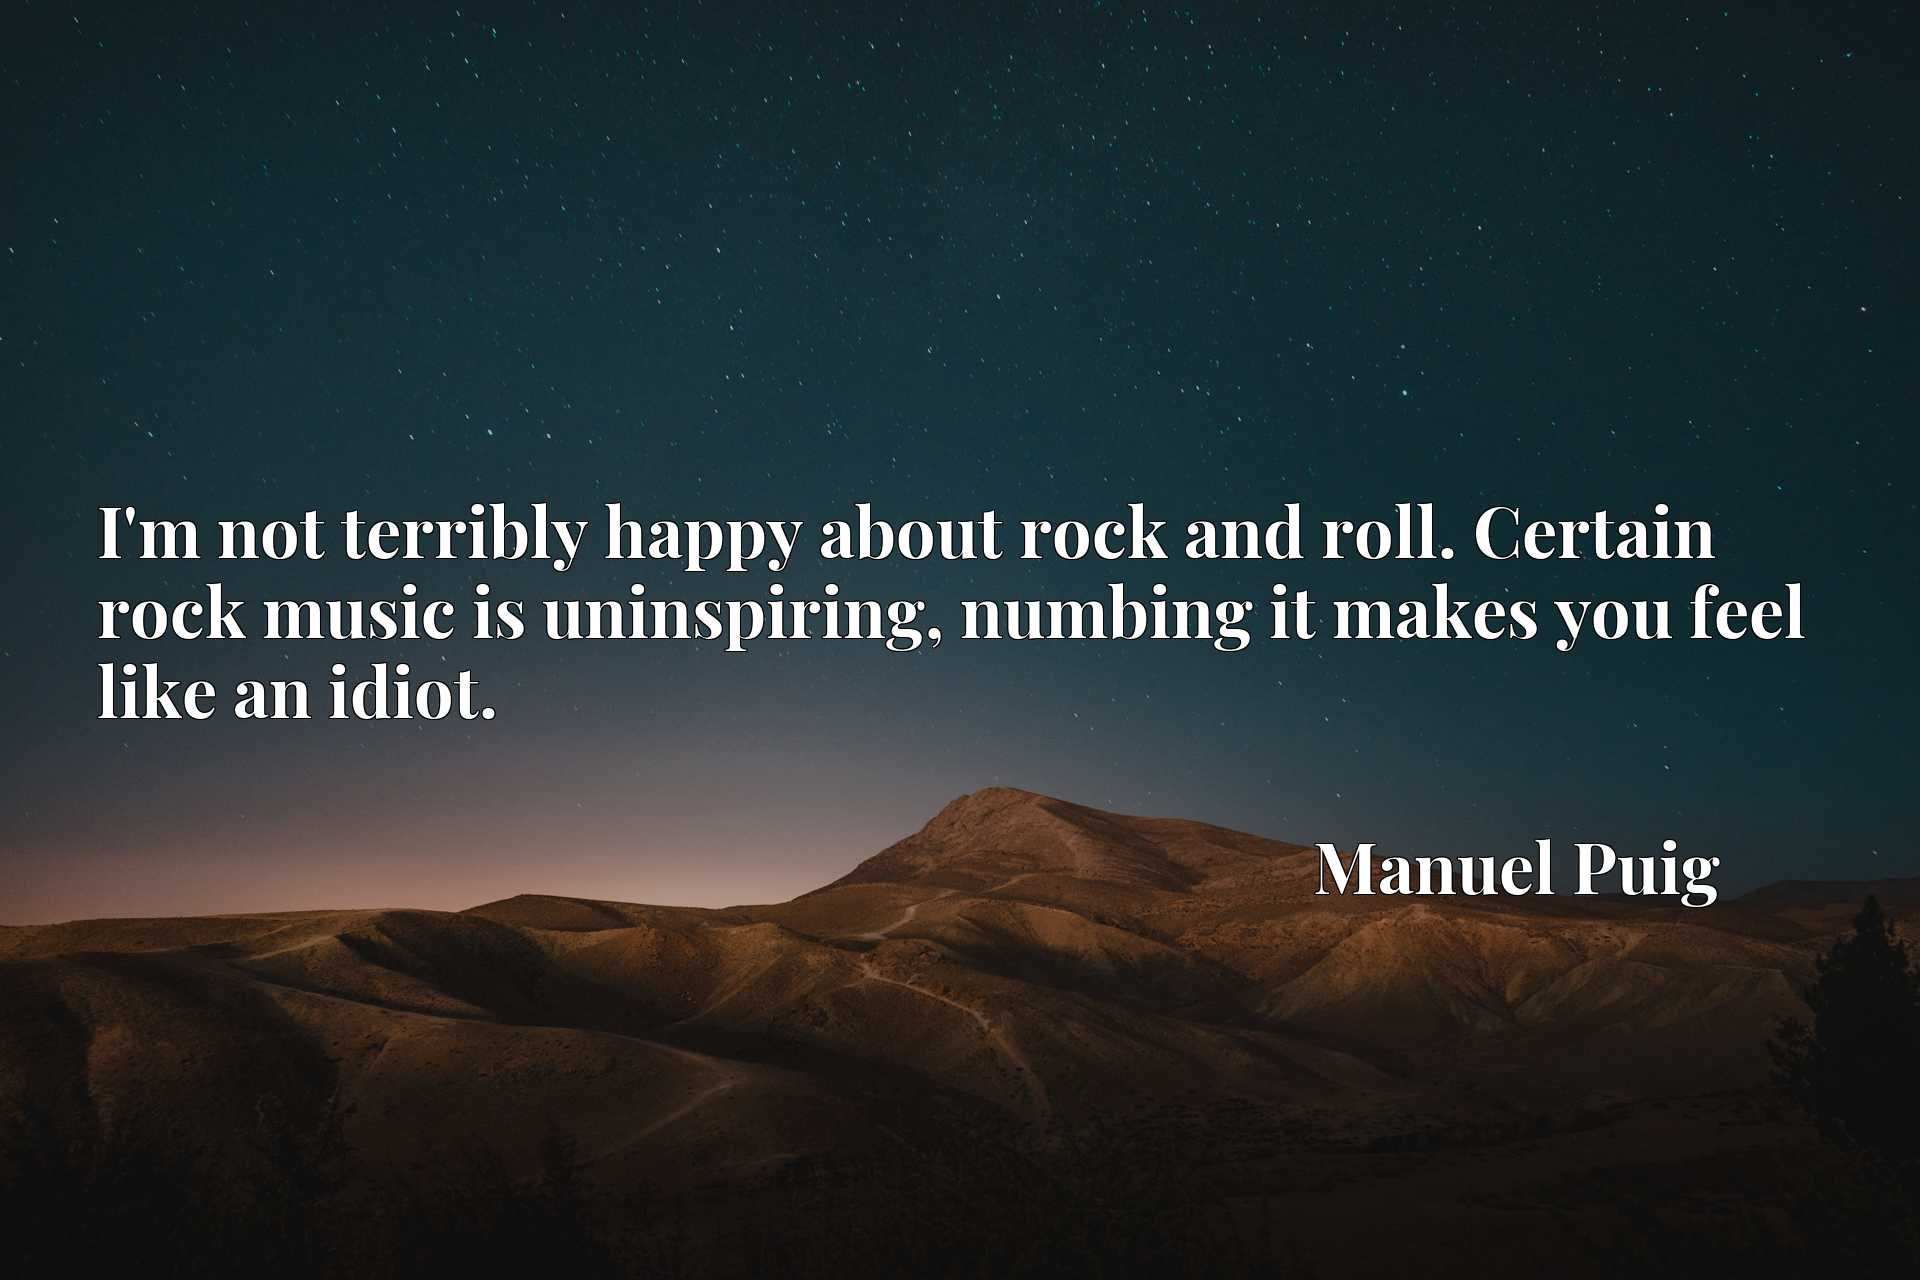 I'm not terribly happy about rock and roll. Certain rock music is uninspiring, numbing it makes you feel like an idiot.